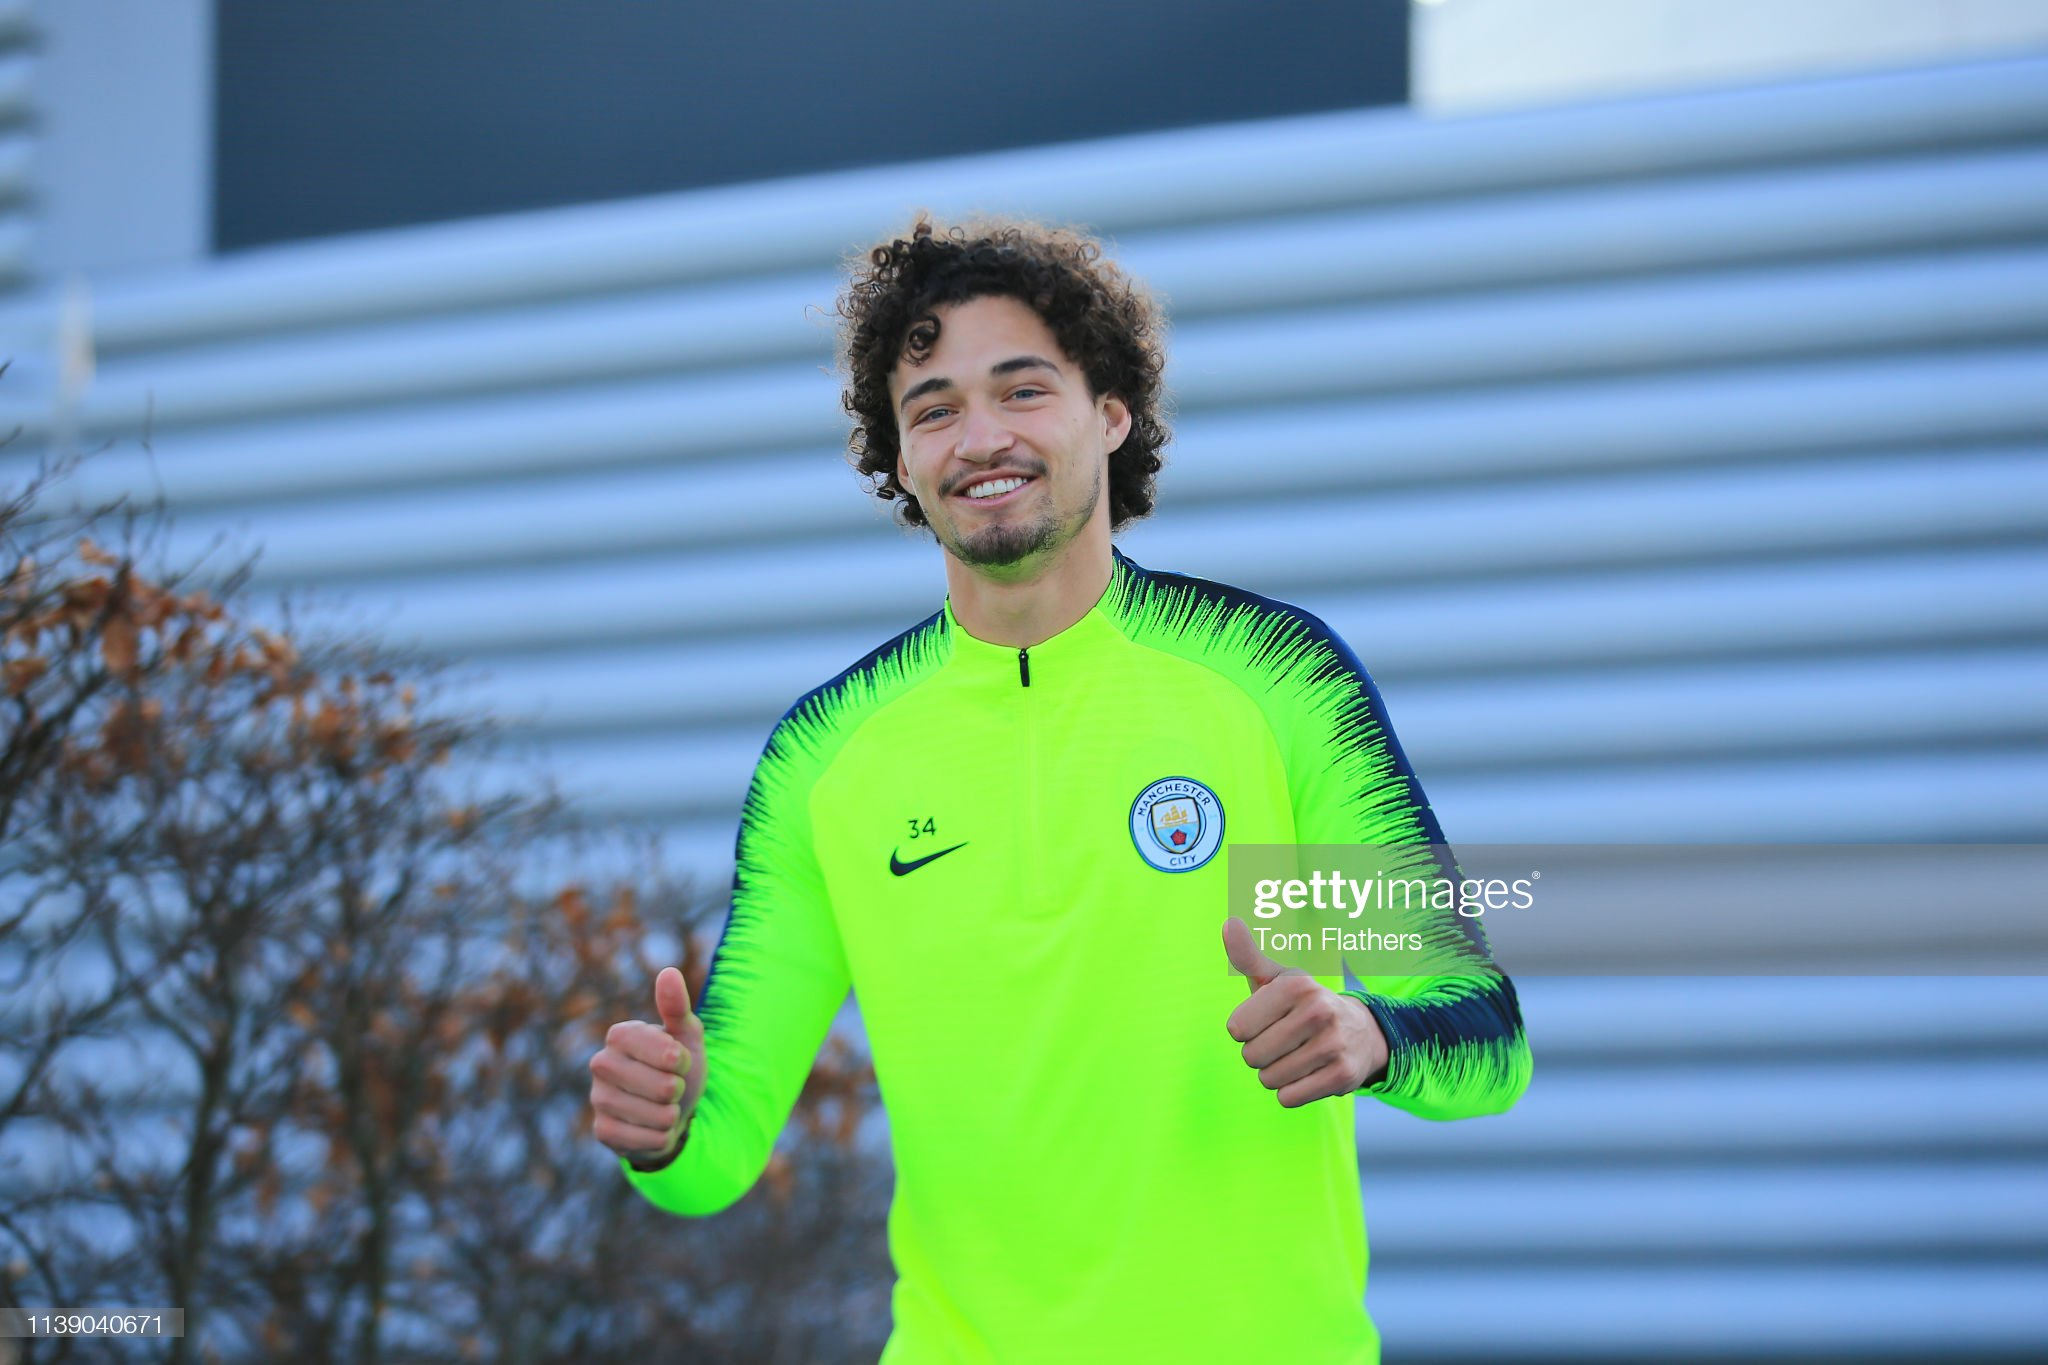 https://media.gettyimages.com/photos/manchester-citys-phillipe-sandler-walks-out-to-training-at-manchester-picture-id1139040671?s=2048x2048